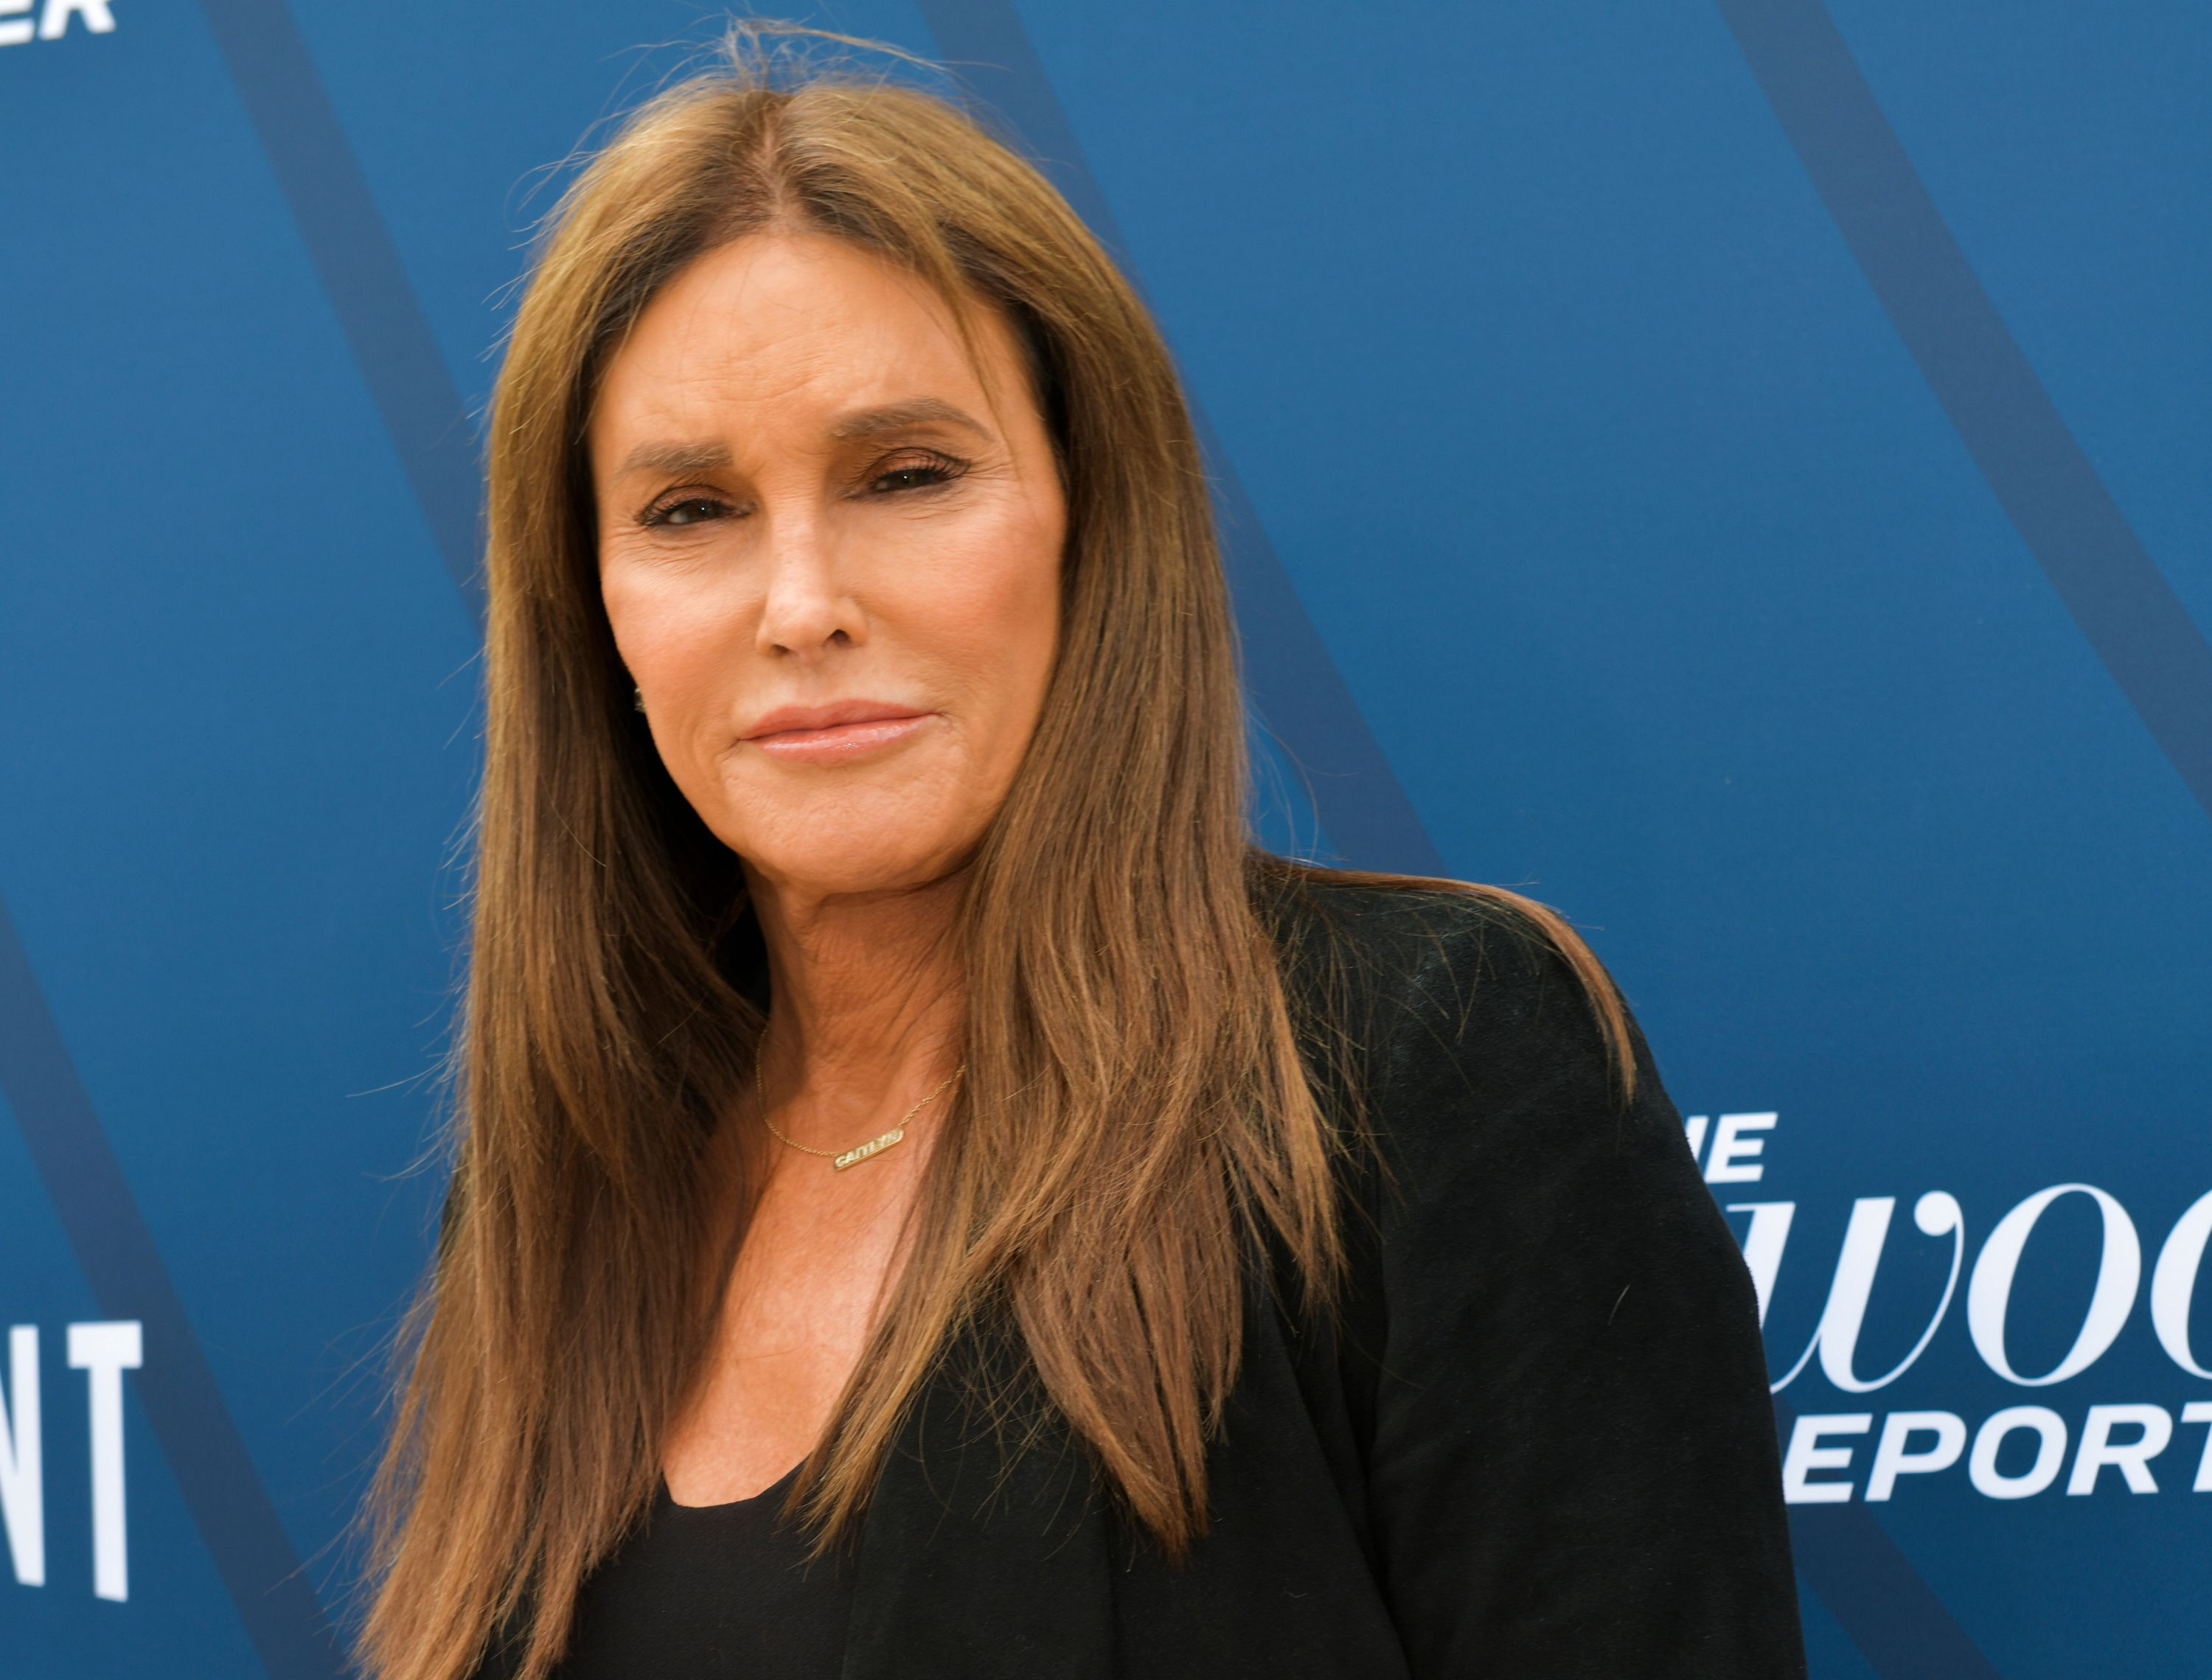 Caitlyn Jenner poses for photographers